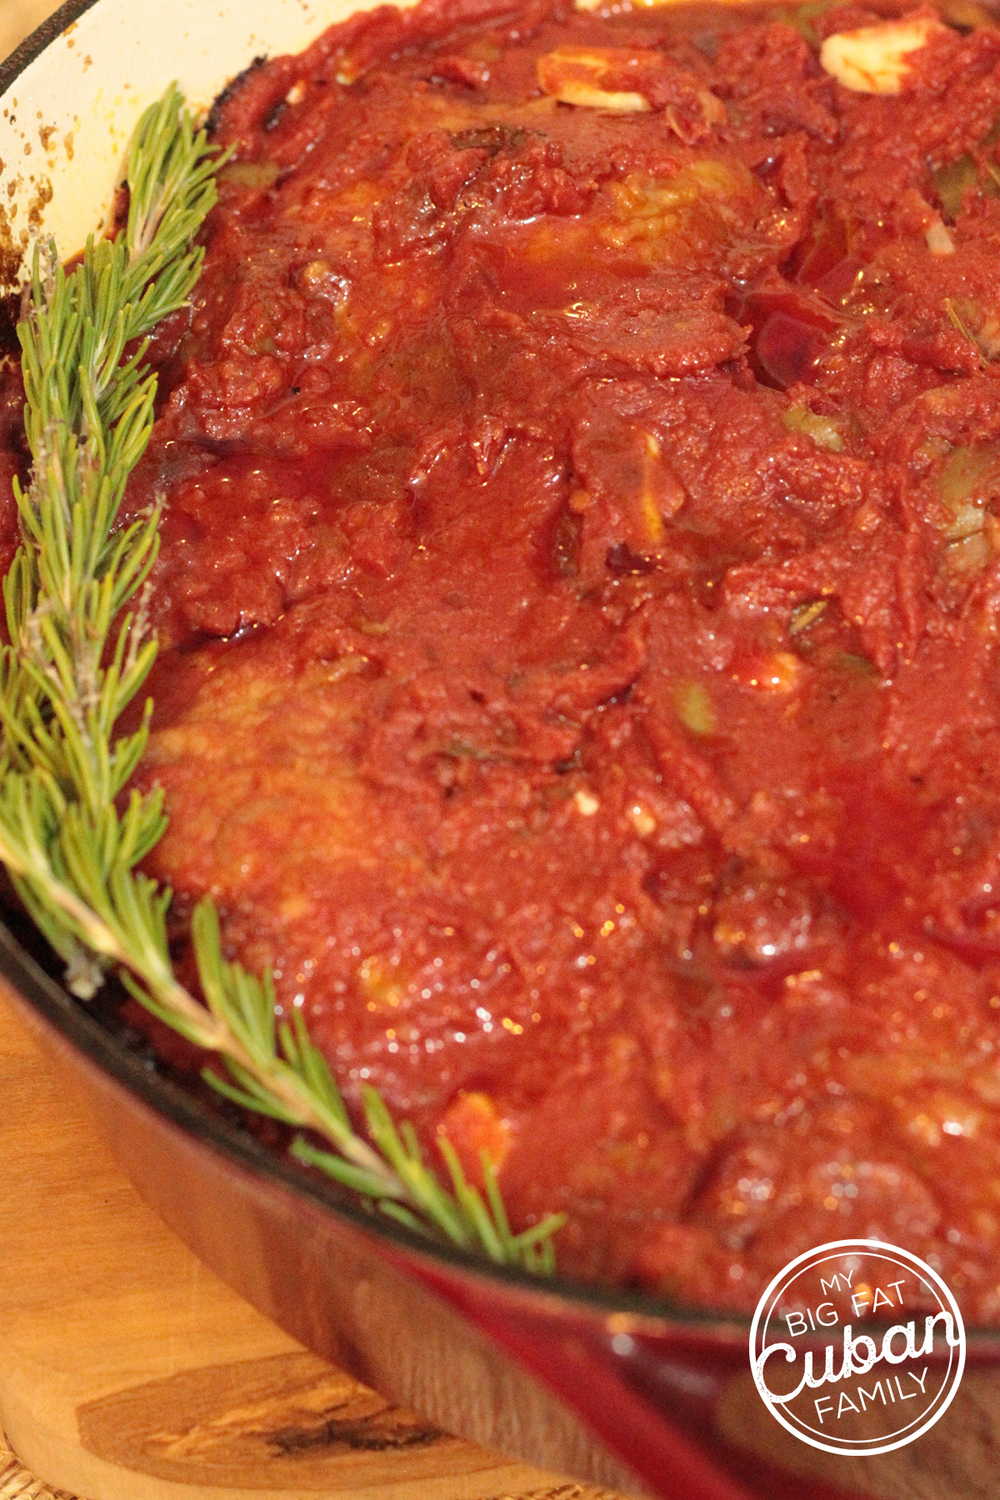 My Big Fat Cuban Family - Chicken Cacciatore Recipe